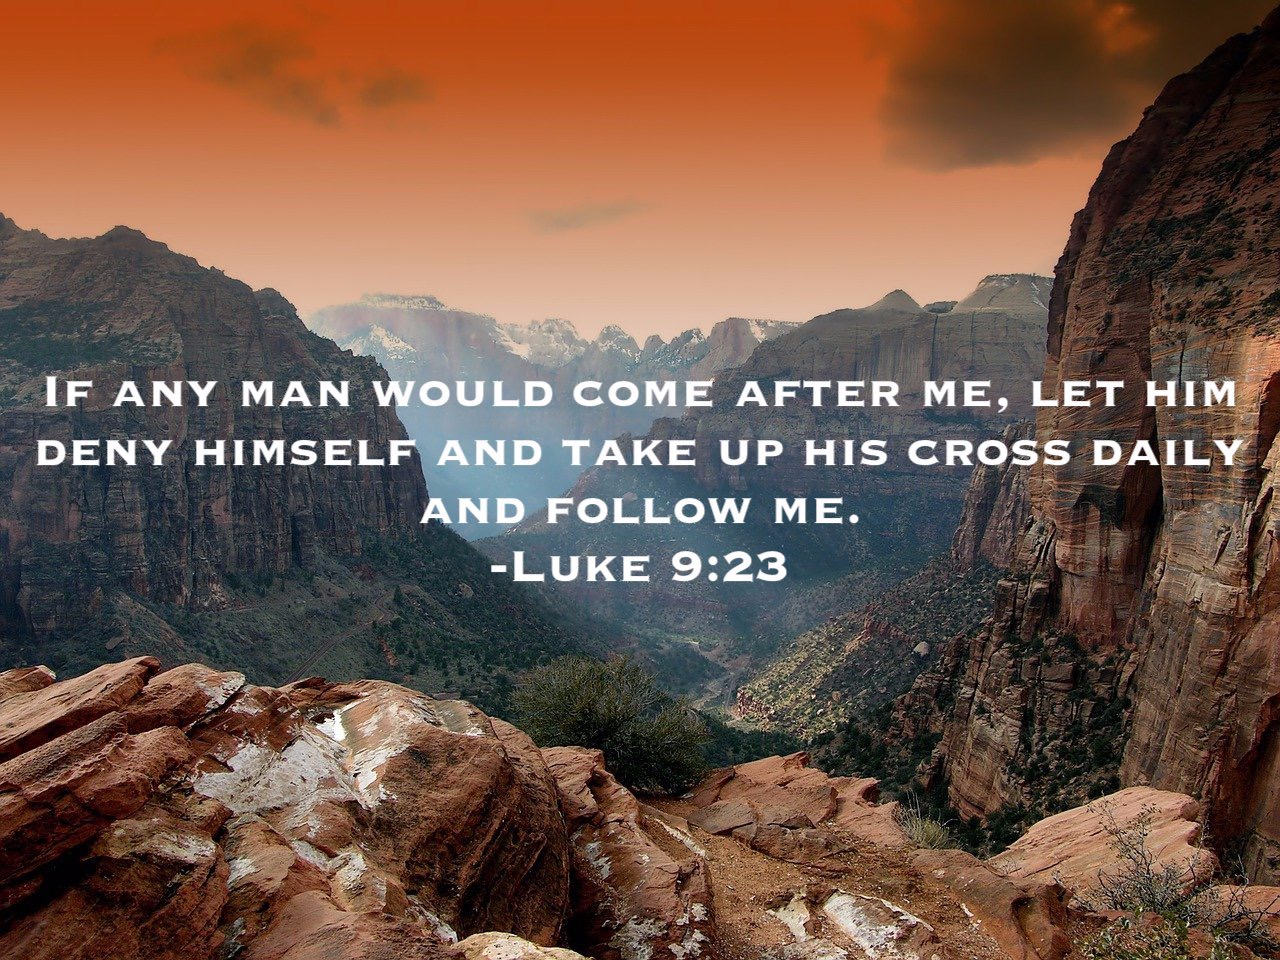 Asceticism Exodus 90 Luke 9:23 take up his cross daily and follow me